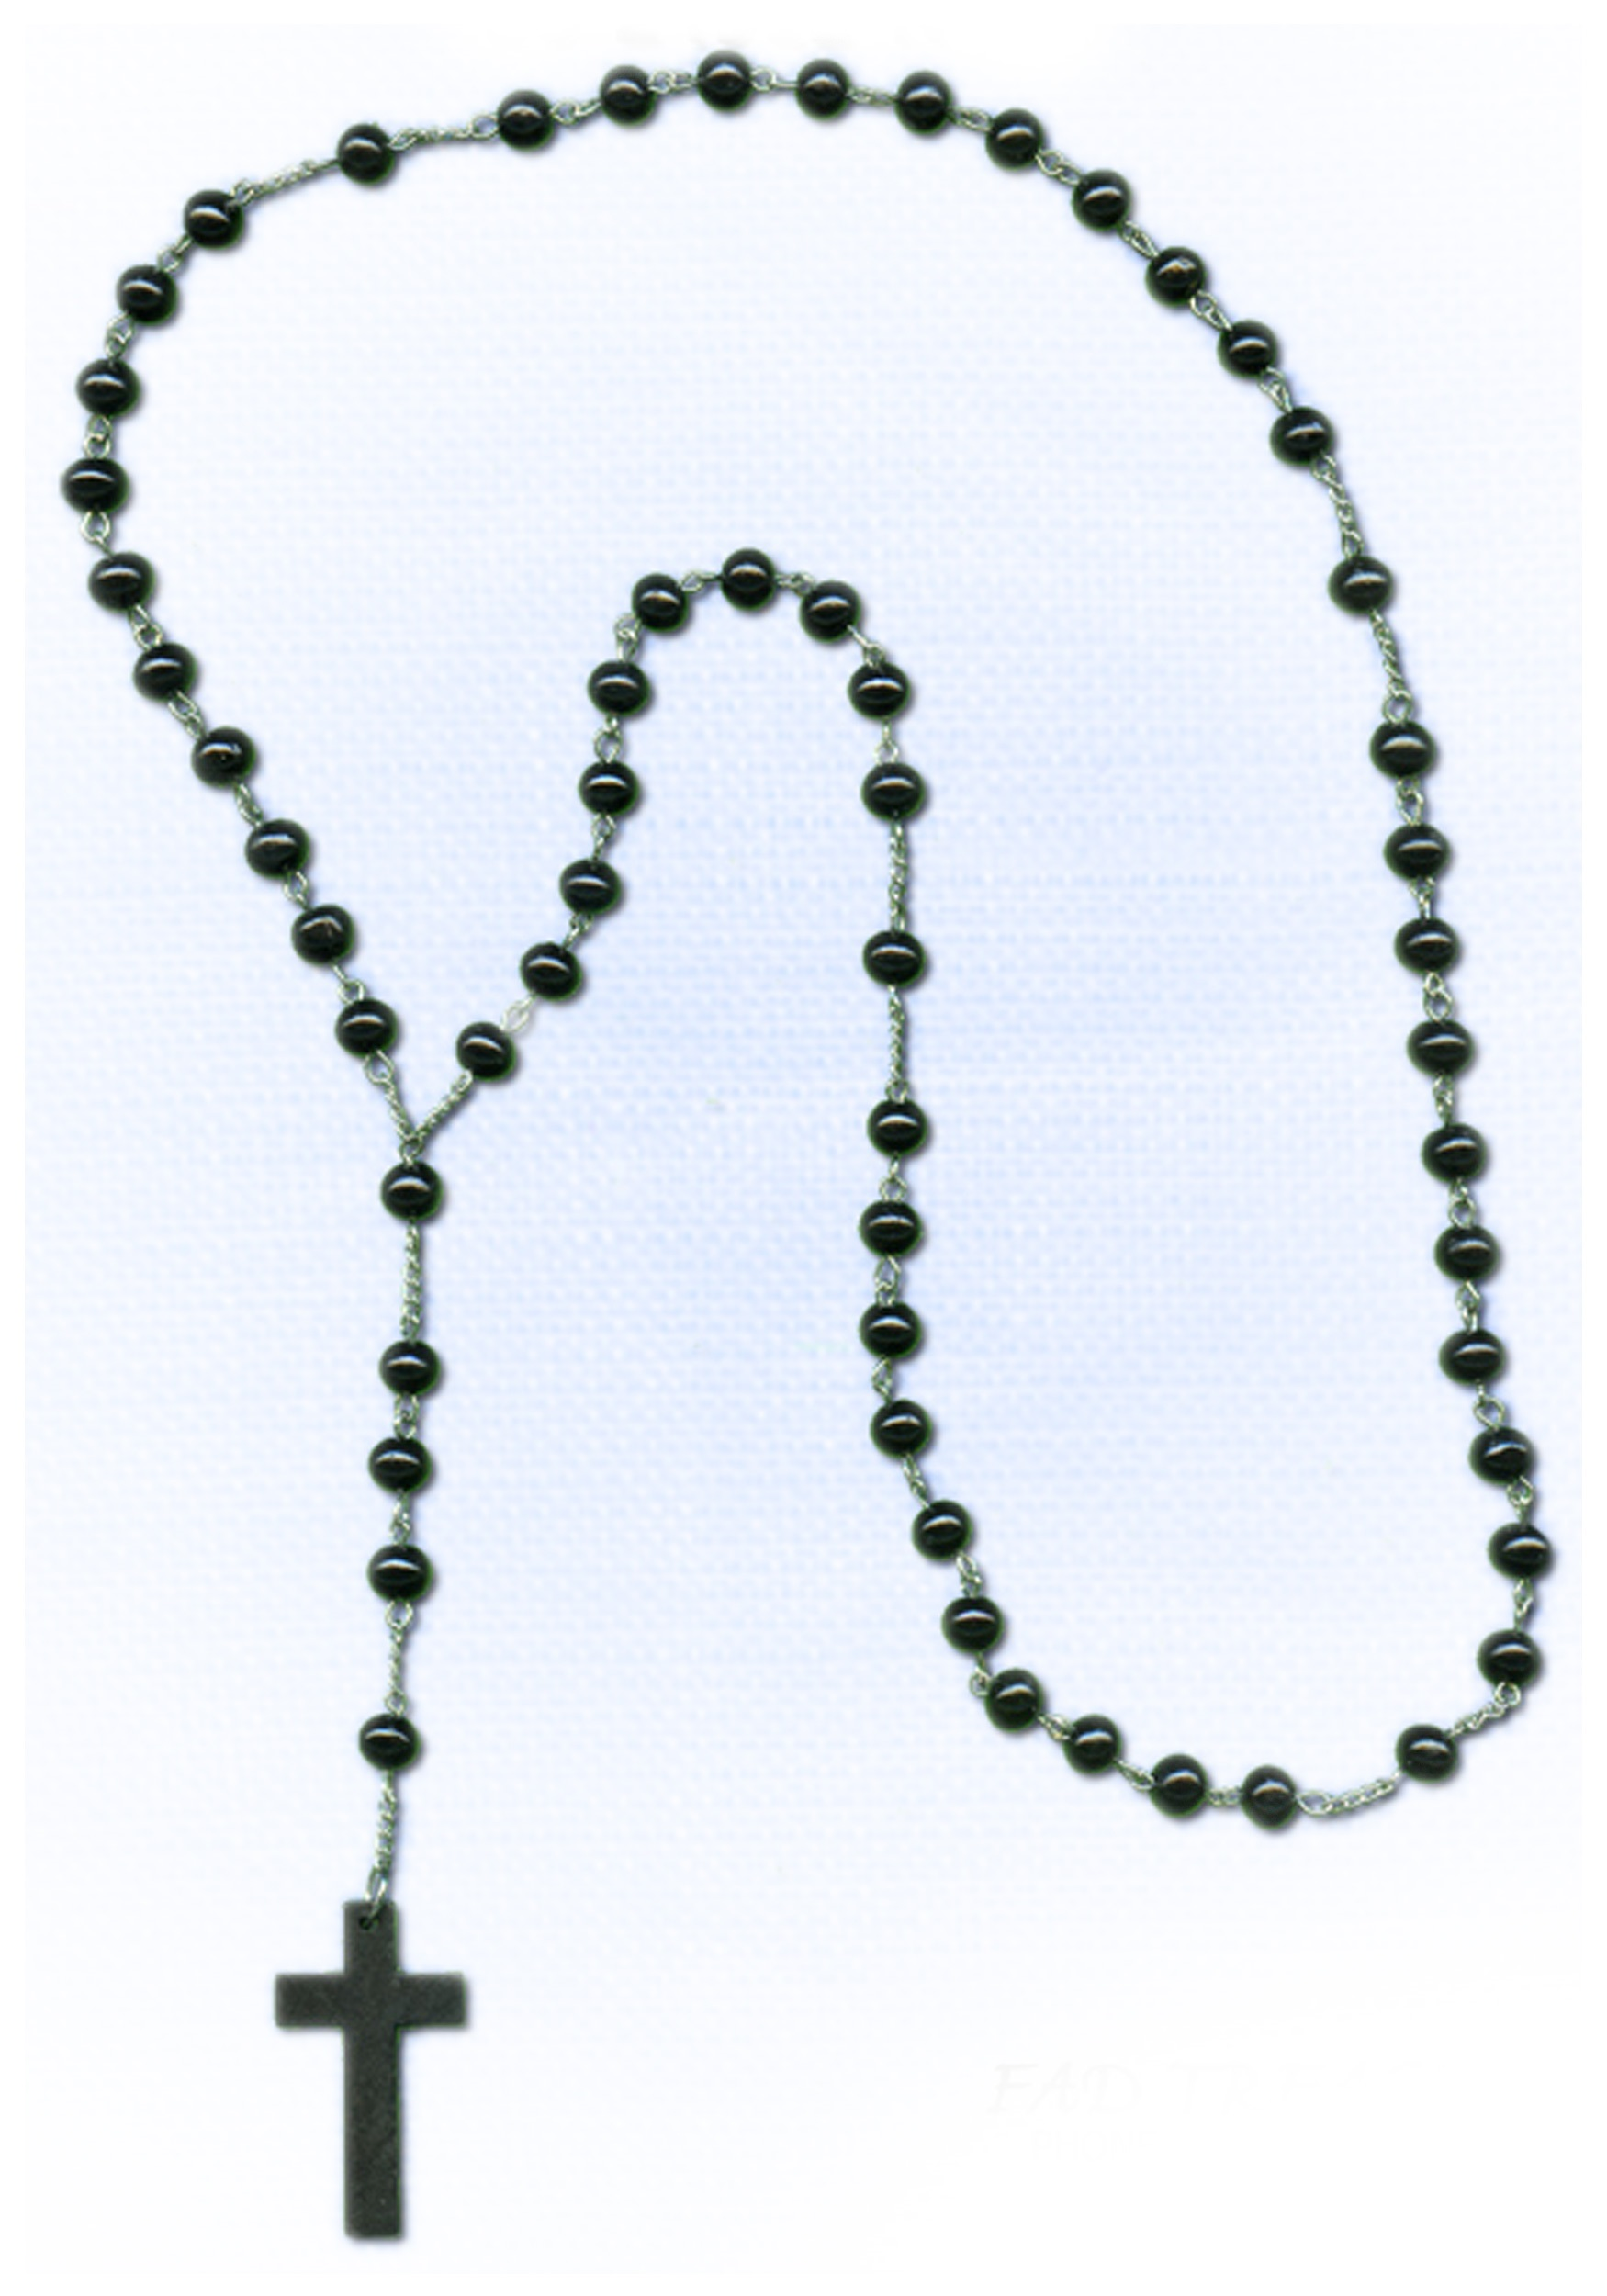 Holy Rosary Necklace Religious Accessories #3B130M.